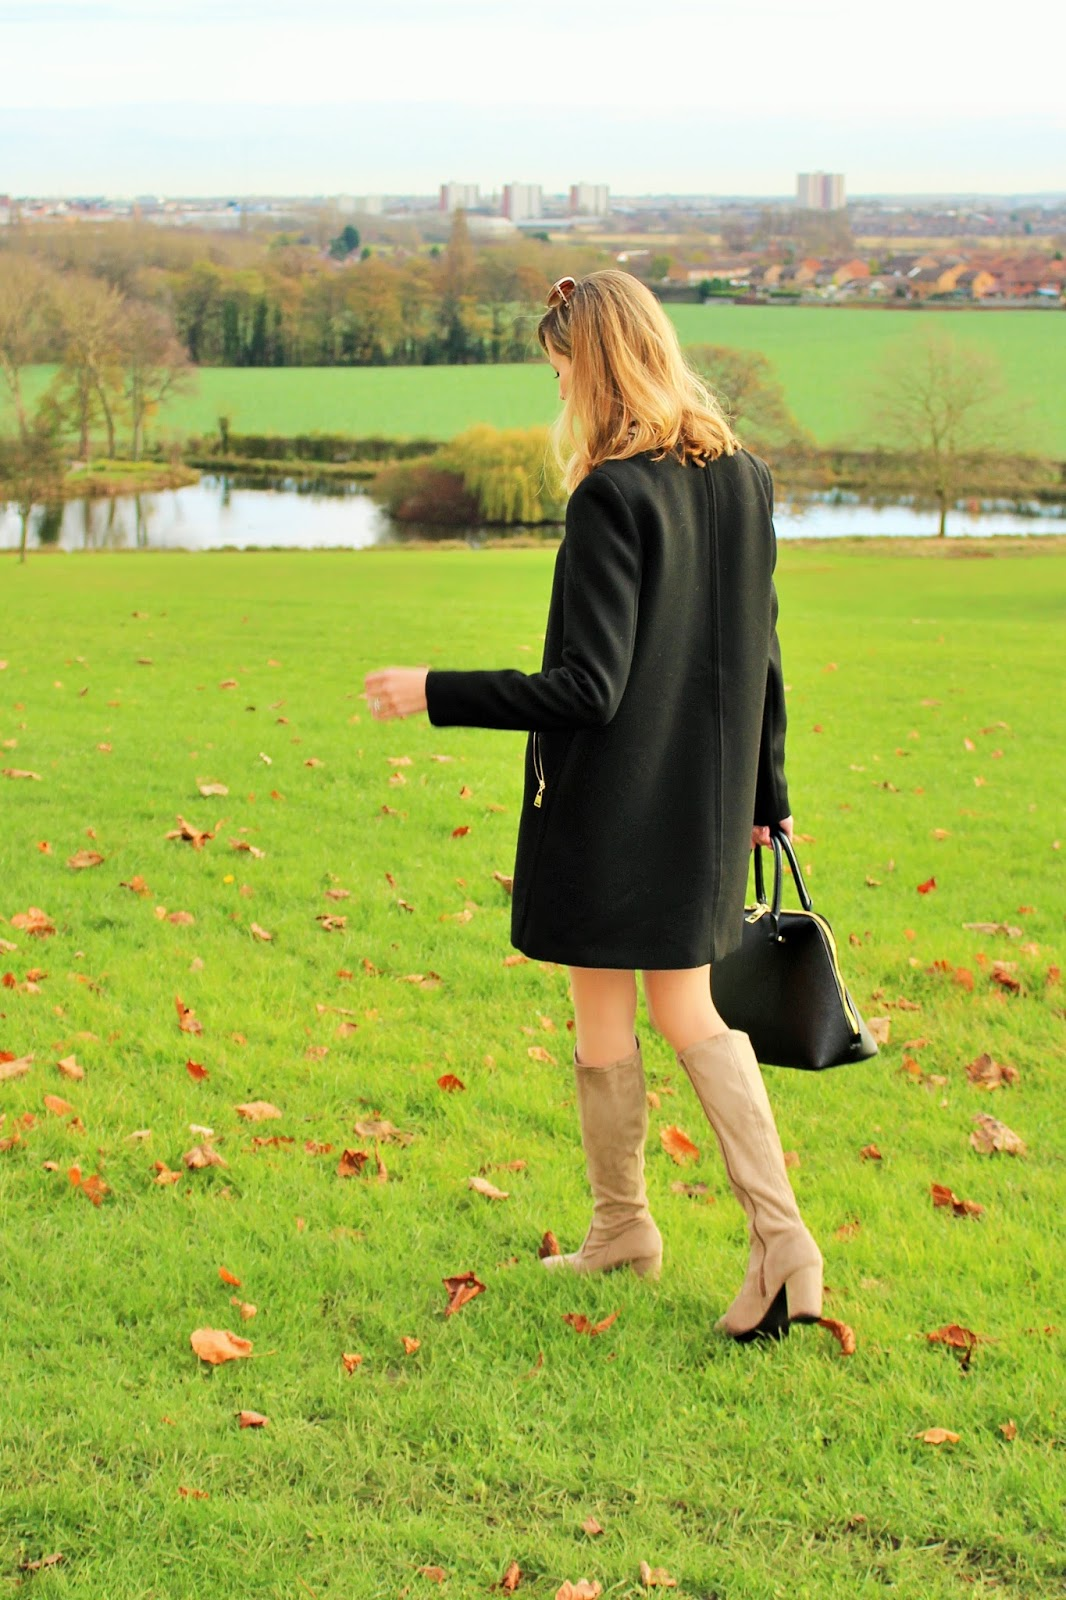 OOTD featuring Topshop, Zara and Online Avenue - Sixties Style